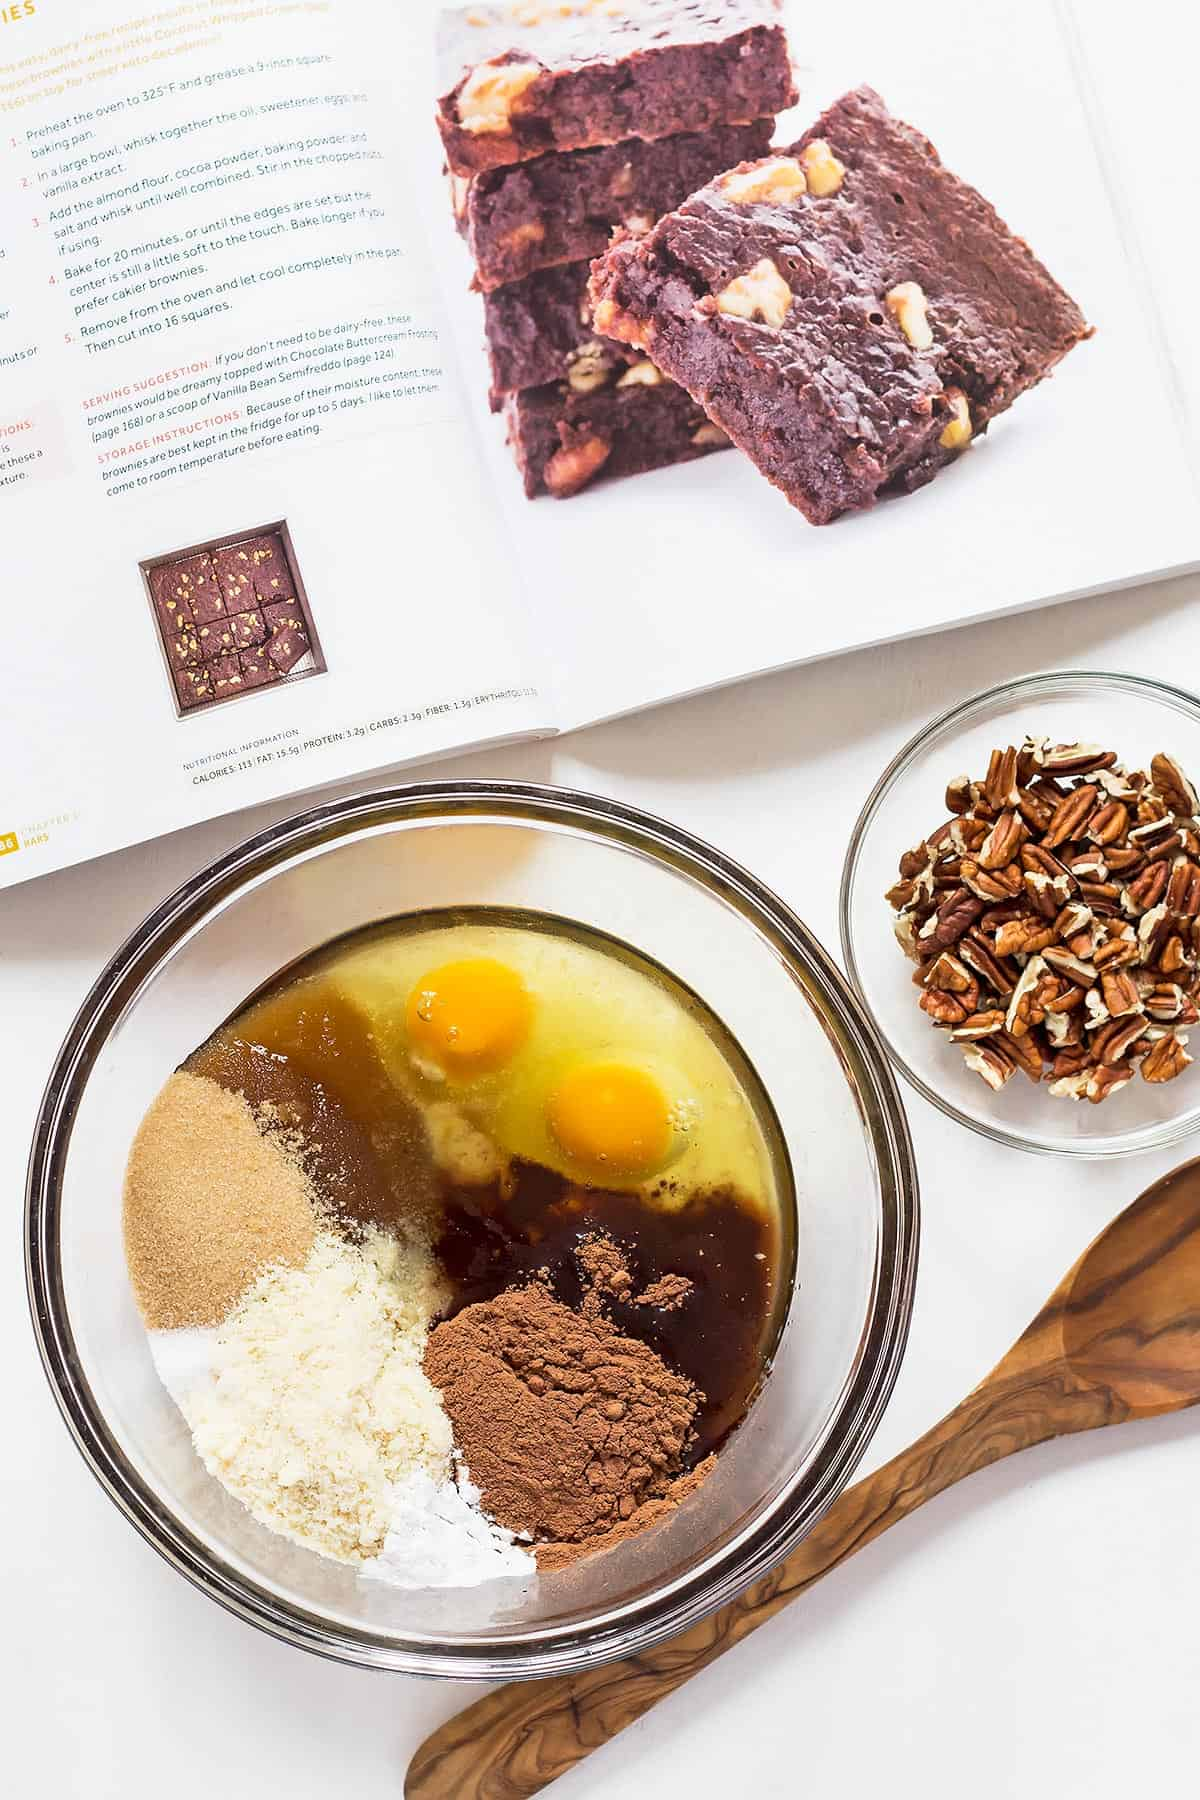 Keto Brownies Ingredients in a large bowl